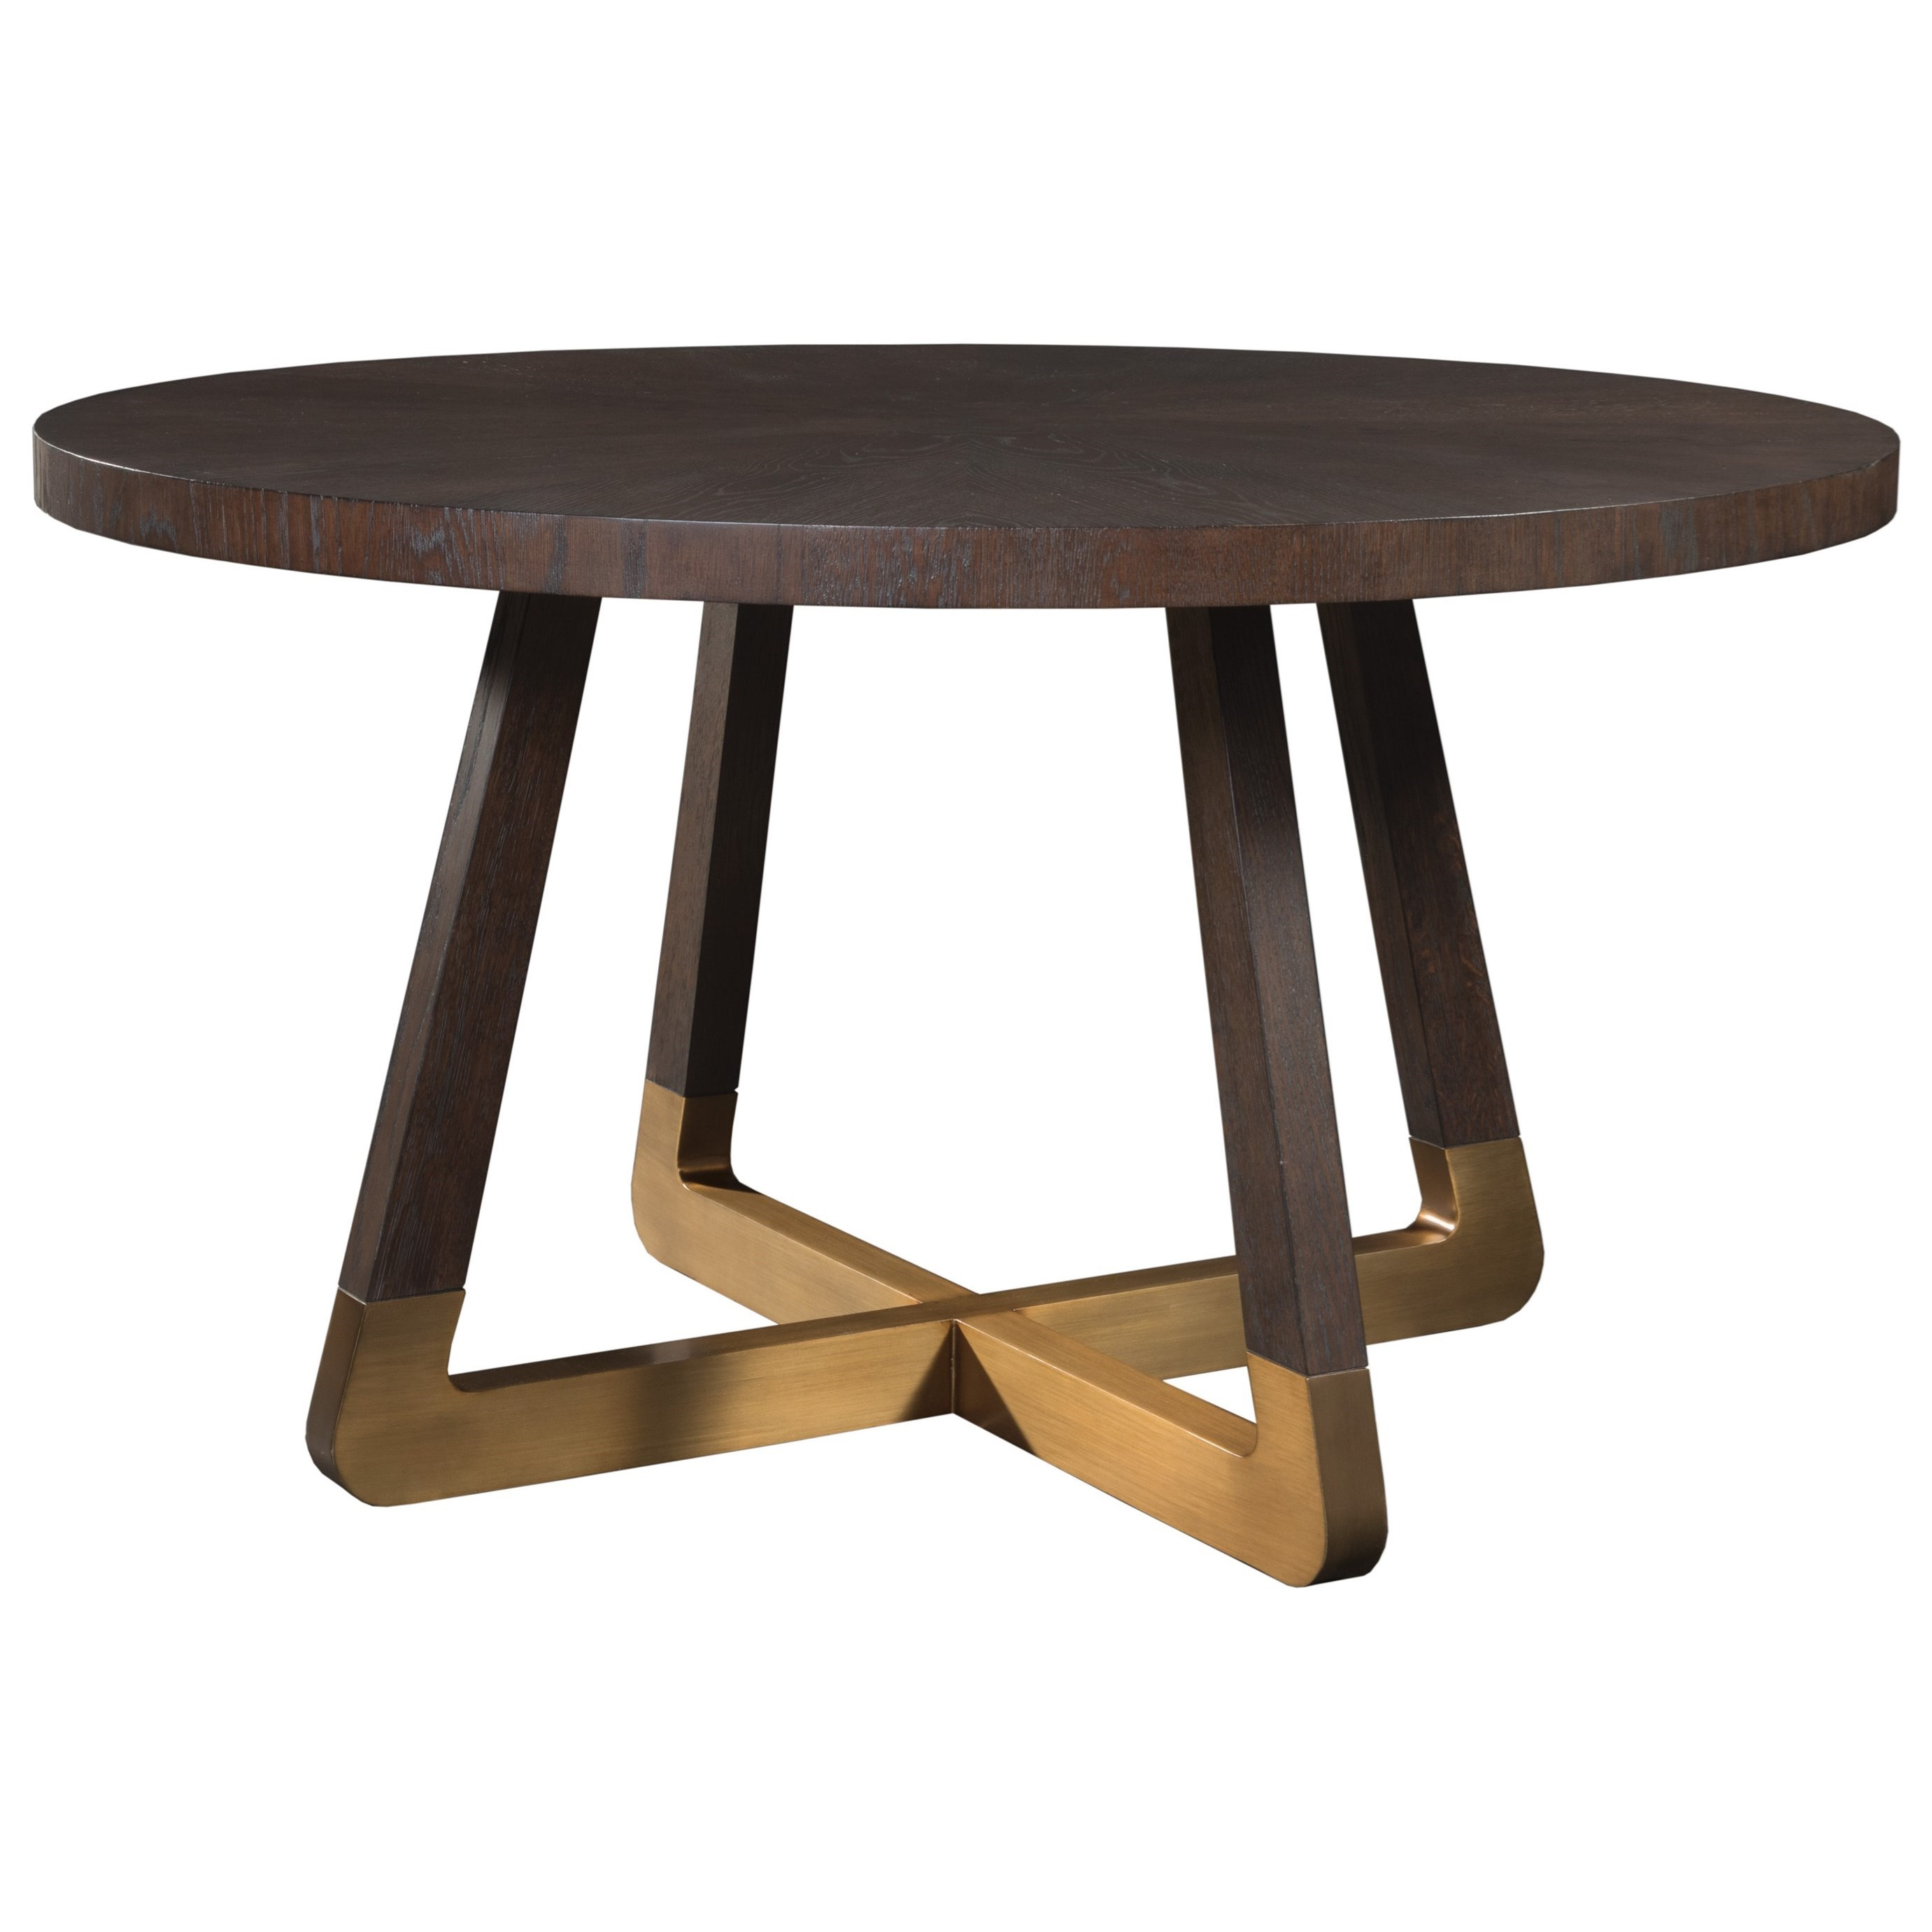 Verbatim Round Dining Table by Artistica at Alison Craig Home Furnishings